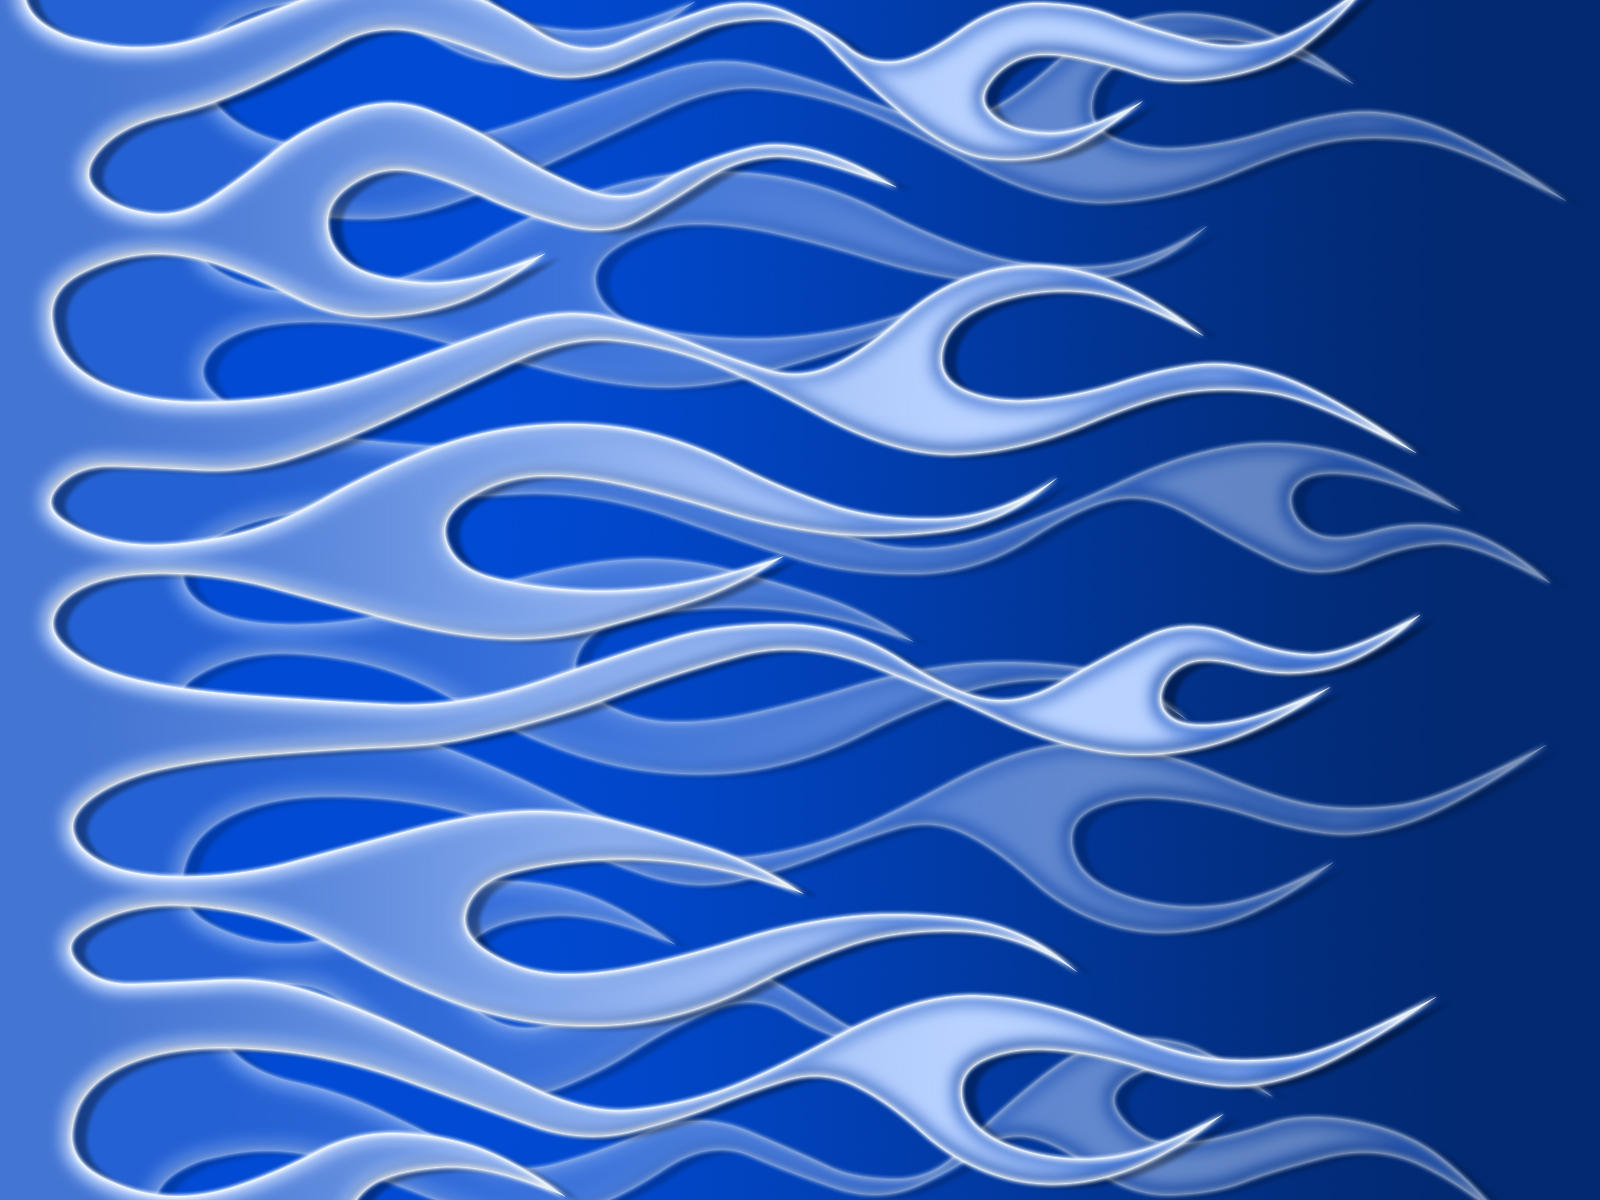 Flames - layered blue by jbensch